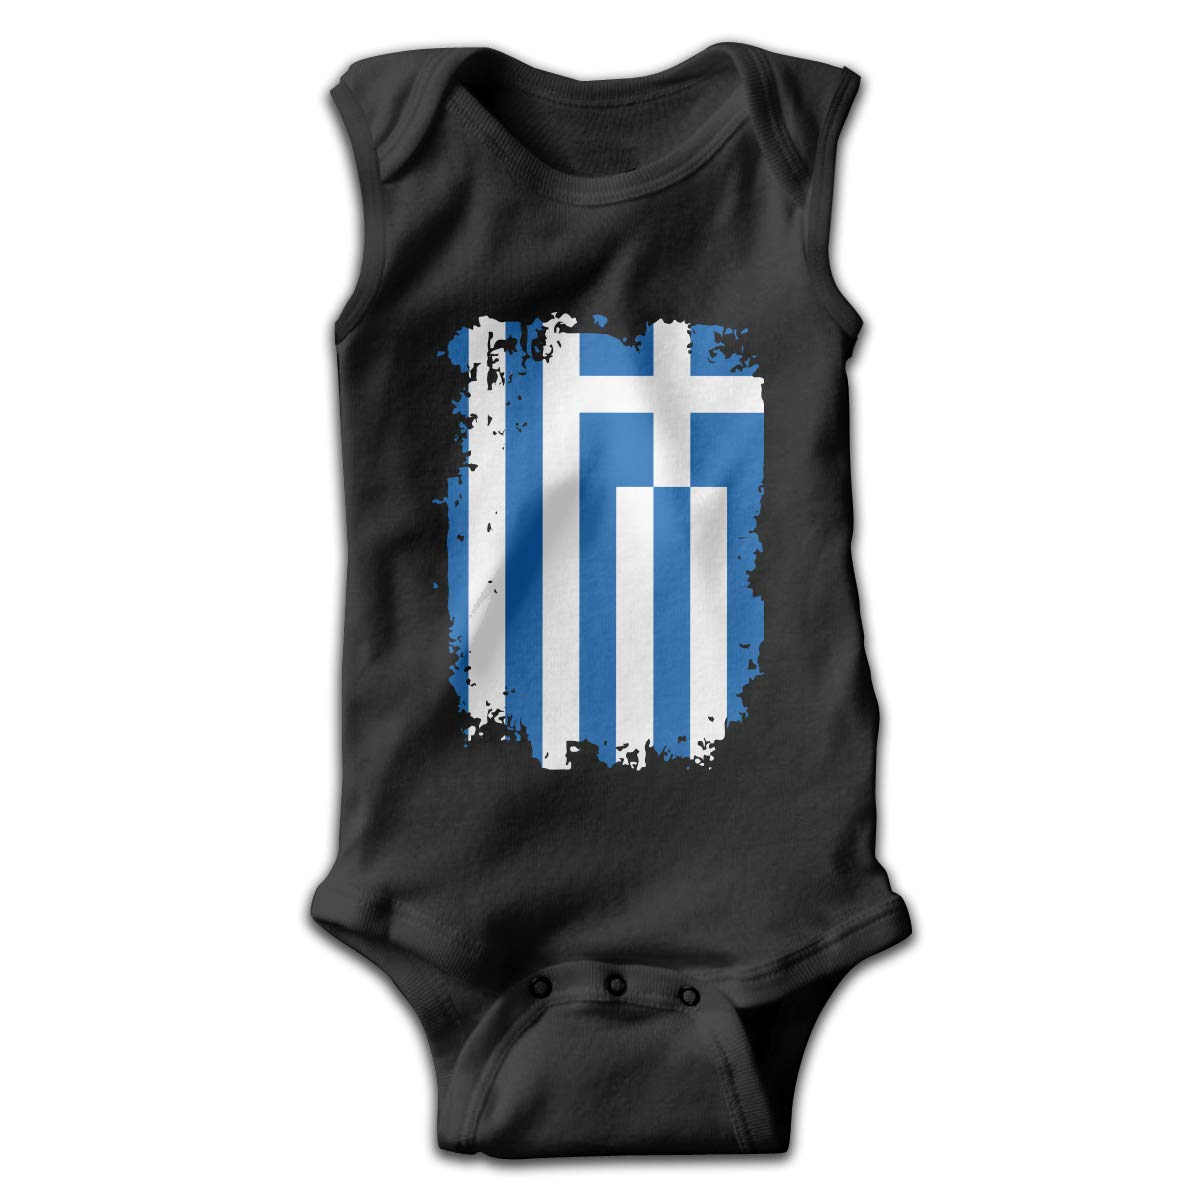 Greece Flag1 Printed Newborn Infant Baby Girls Sleeveless Romper Jumpsuit Bodysuit